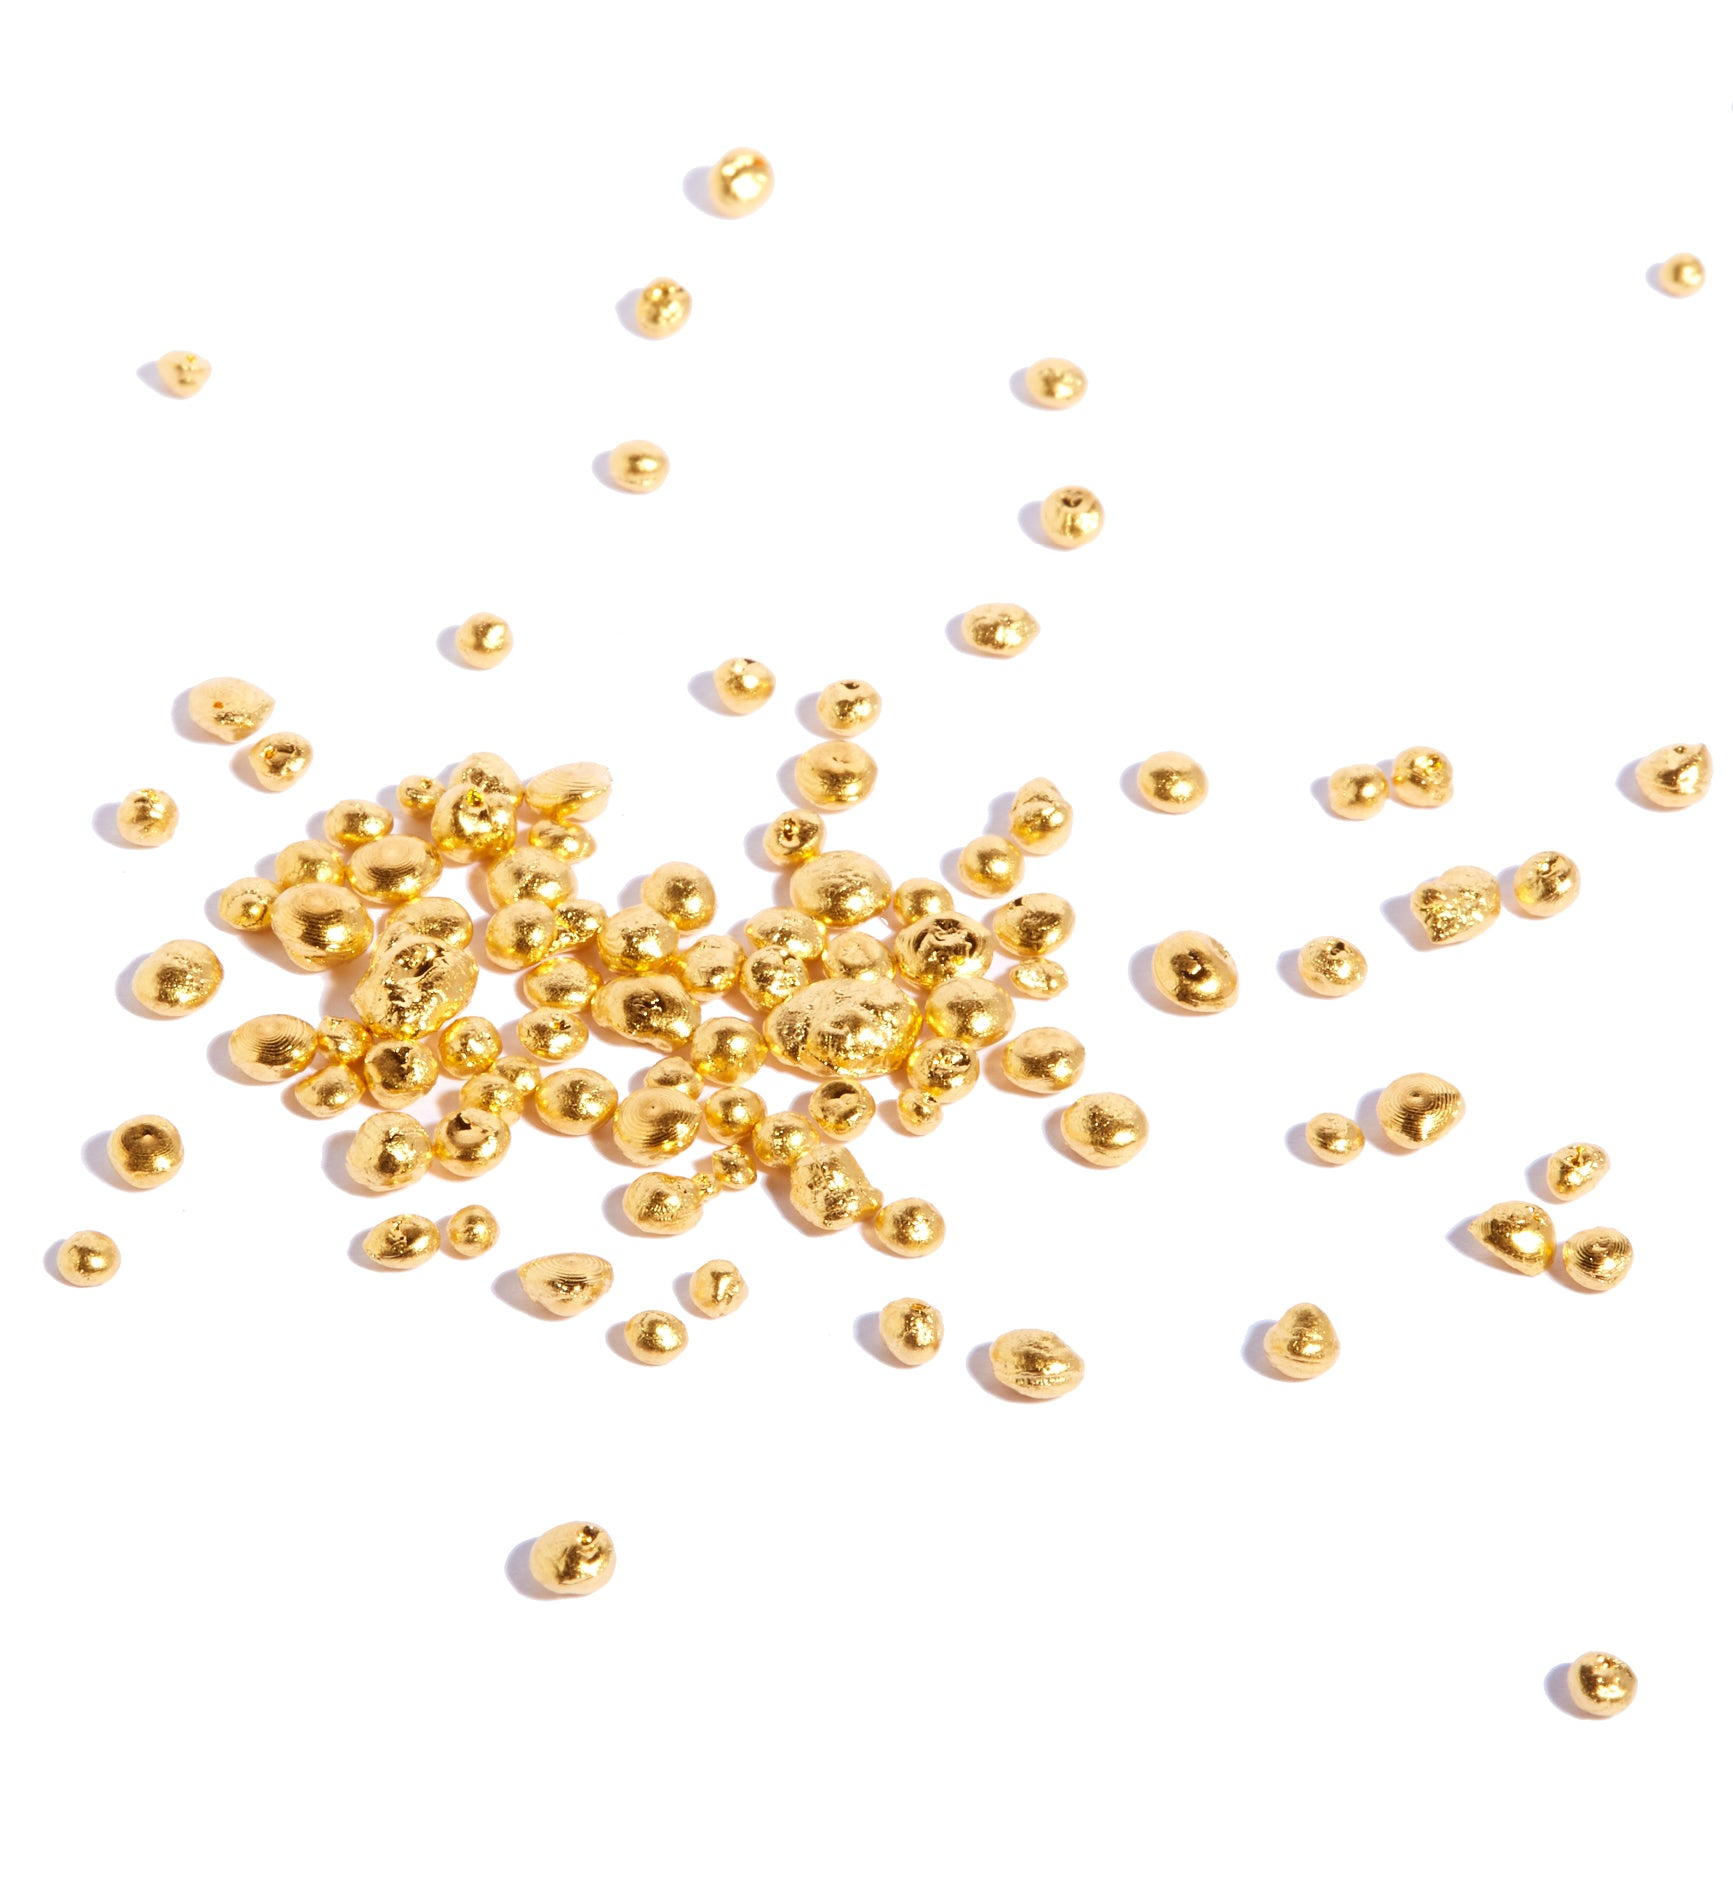 https://cdn.shopify.com/s/files/1/0571/9261/t/15/assets/gold%20granules-1509682939852.jpg?12976561053835926834